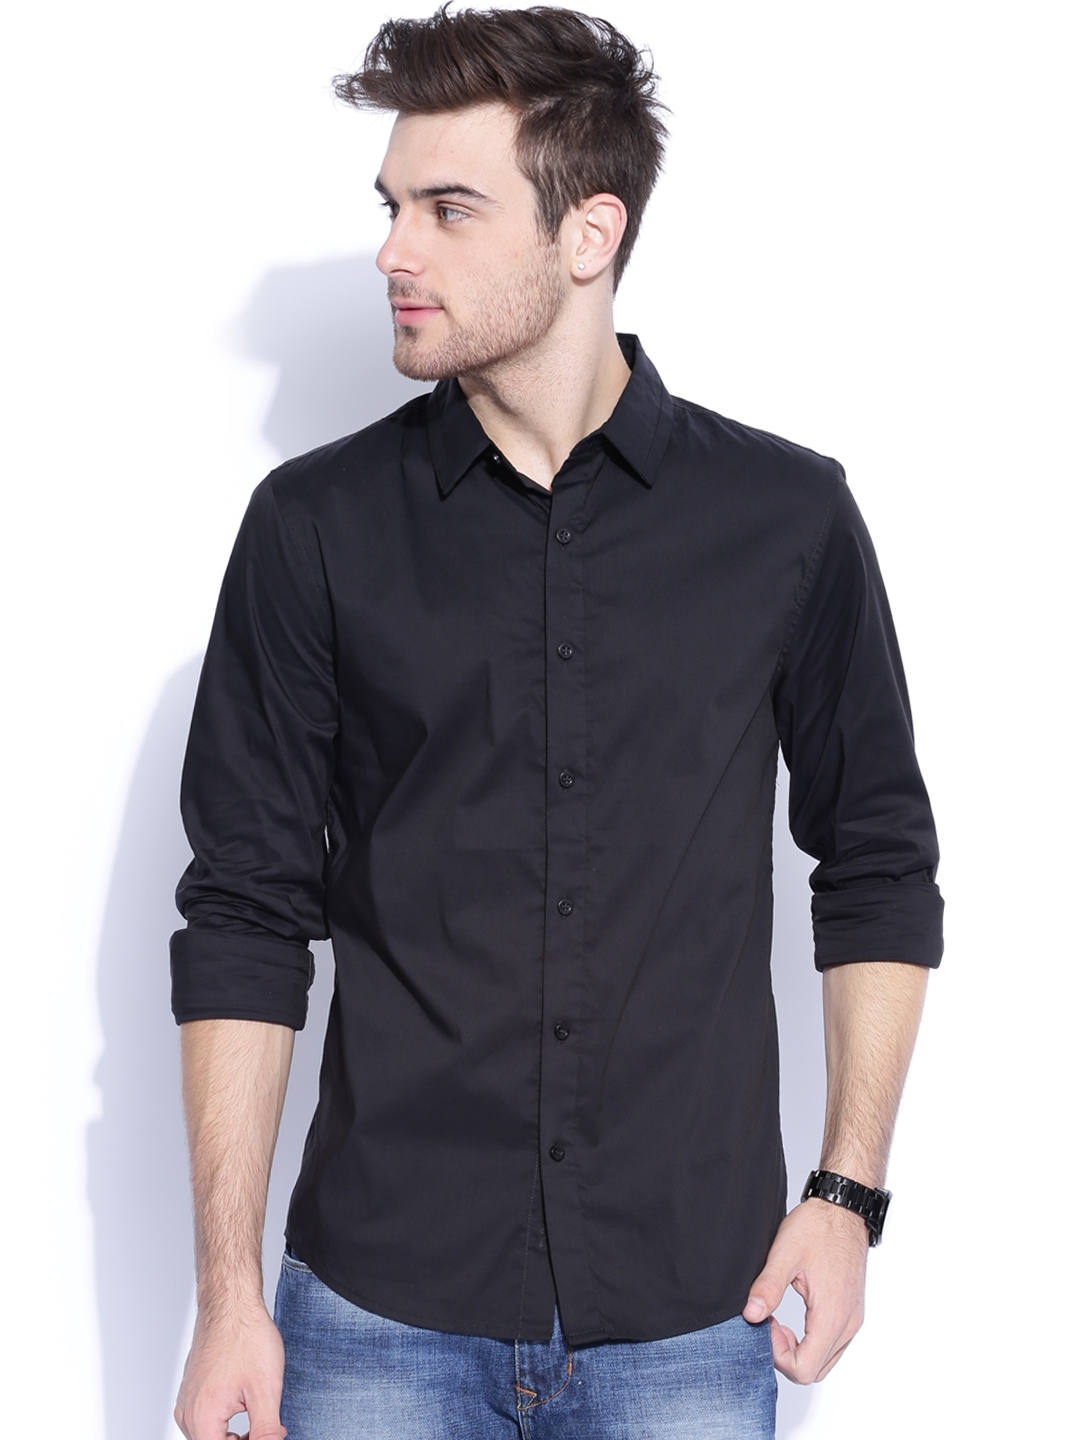 Myntra Guess Black Slim Fit Smart Casual Shirt 783487